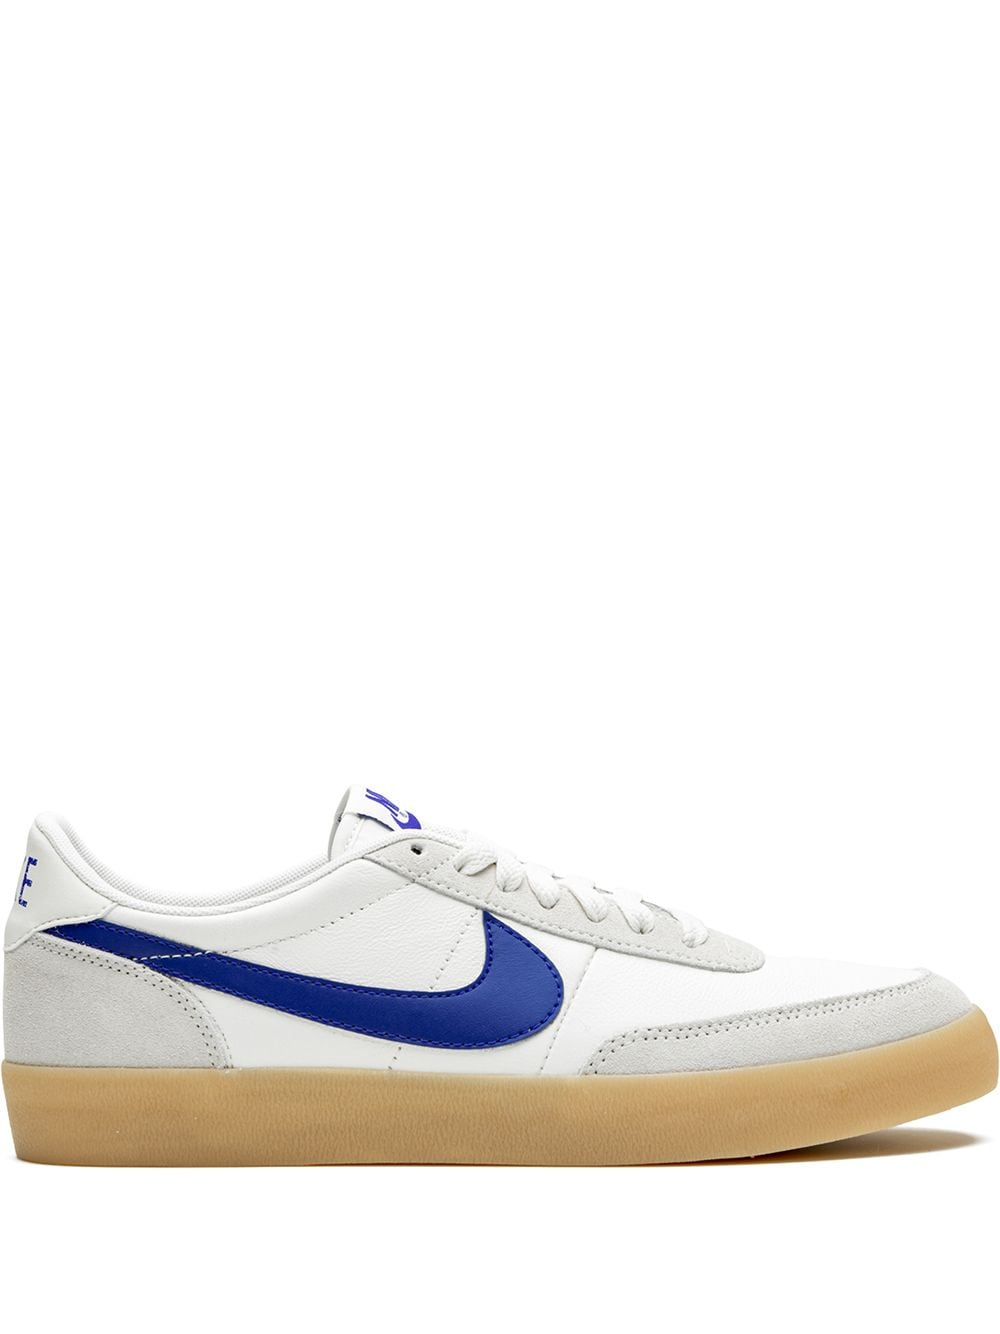 "KillShot 2 Leather ""Sail/Hyper Blue"" - leaders1354"